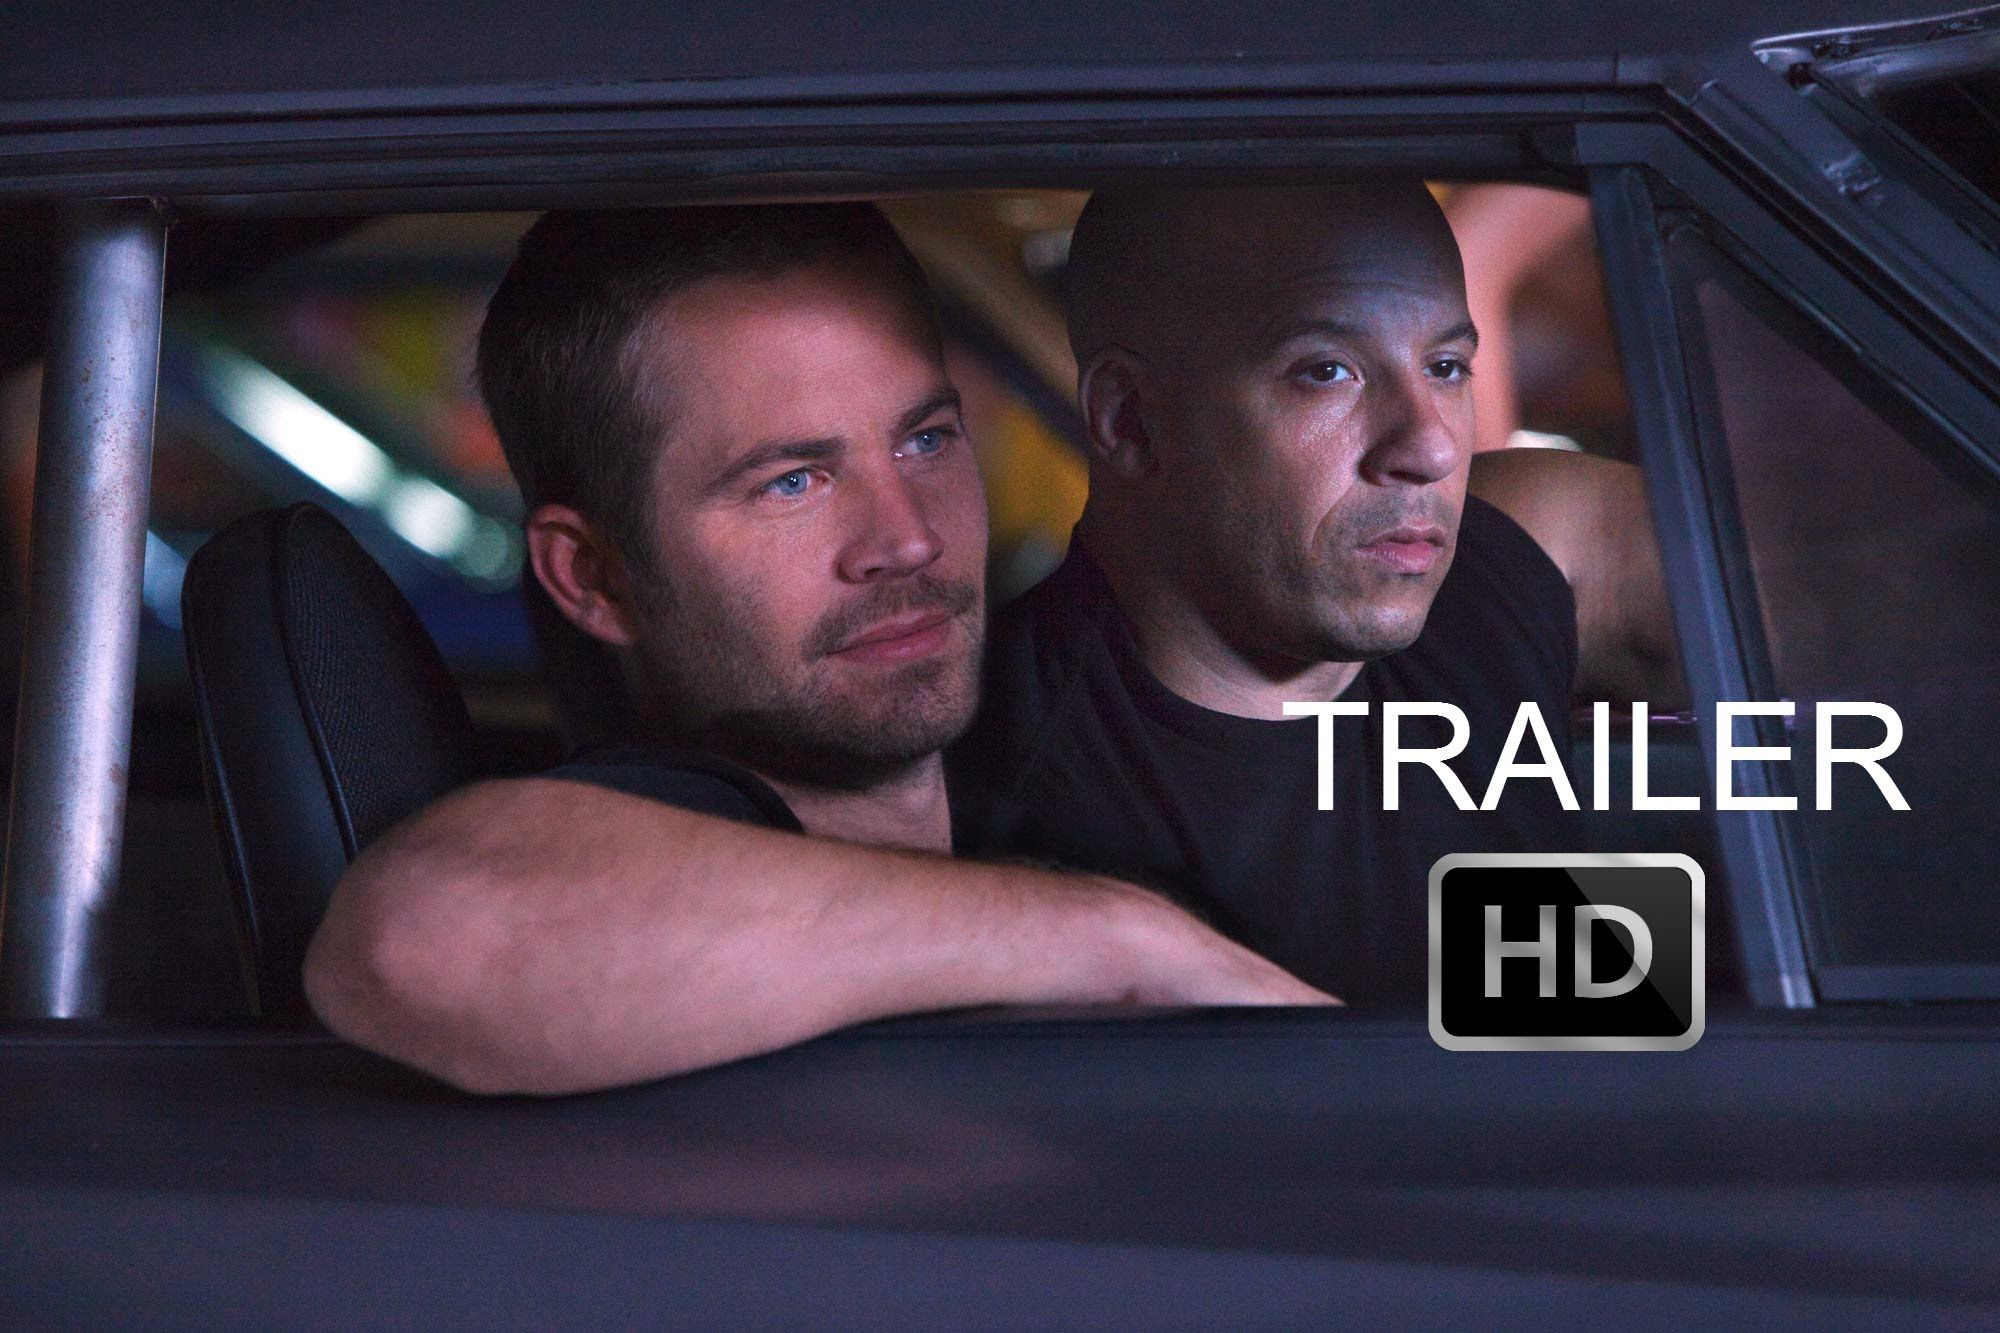 Rip Paul Walker Top Best Fast And The Furious Film: Fast And Furious 7 Official Trailer 2014 HD